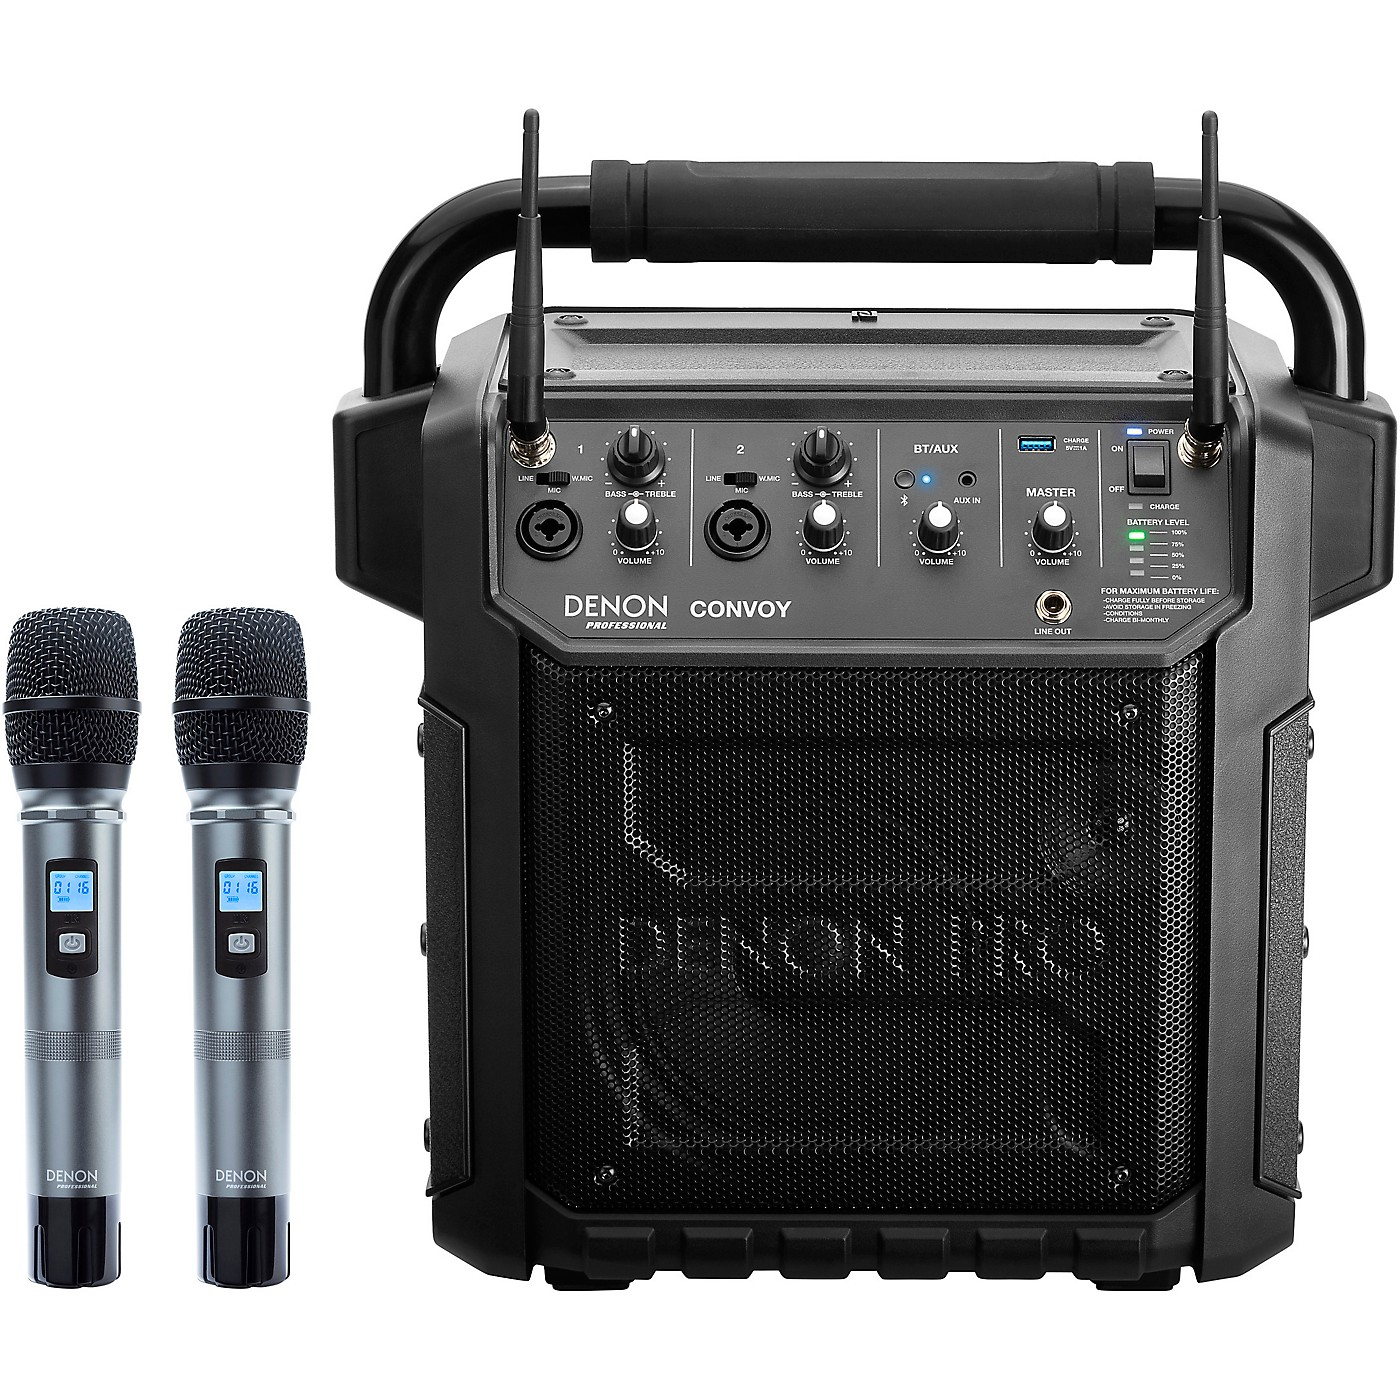 Denon Professional Convoy Portable PA System with Diversity Wireless Mics And Bluetooth Receiver thumbnail